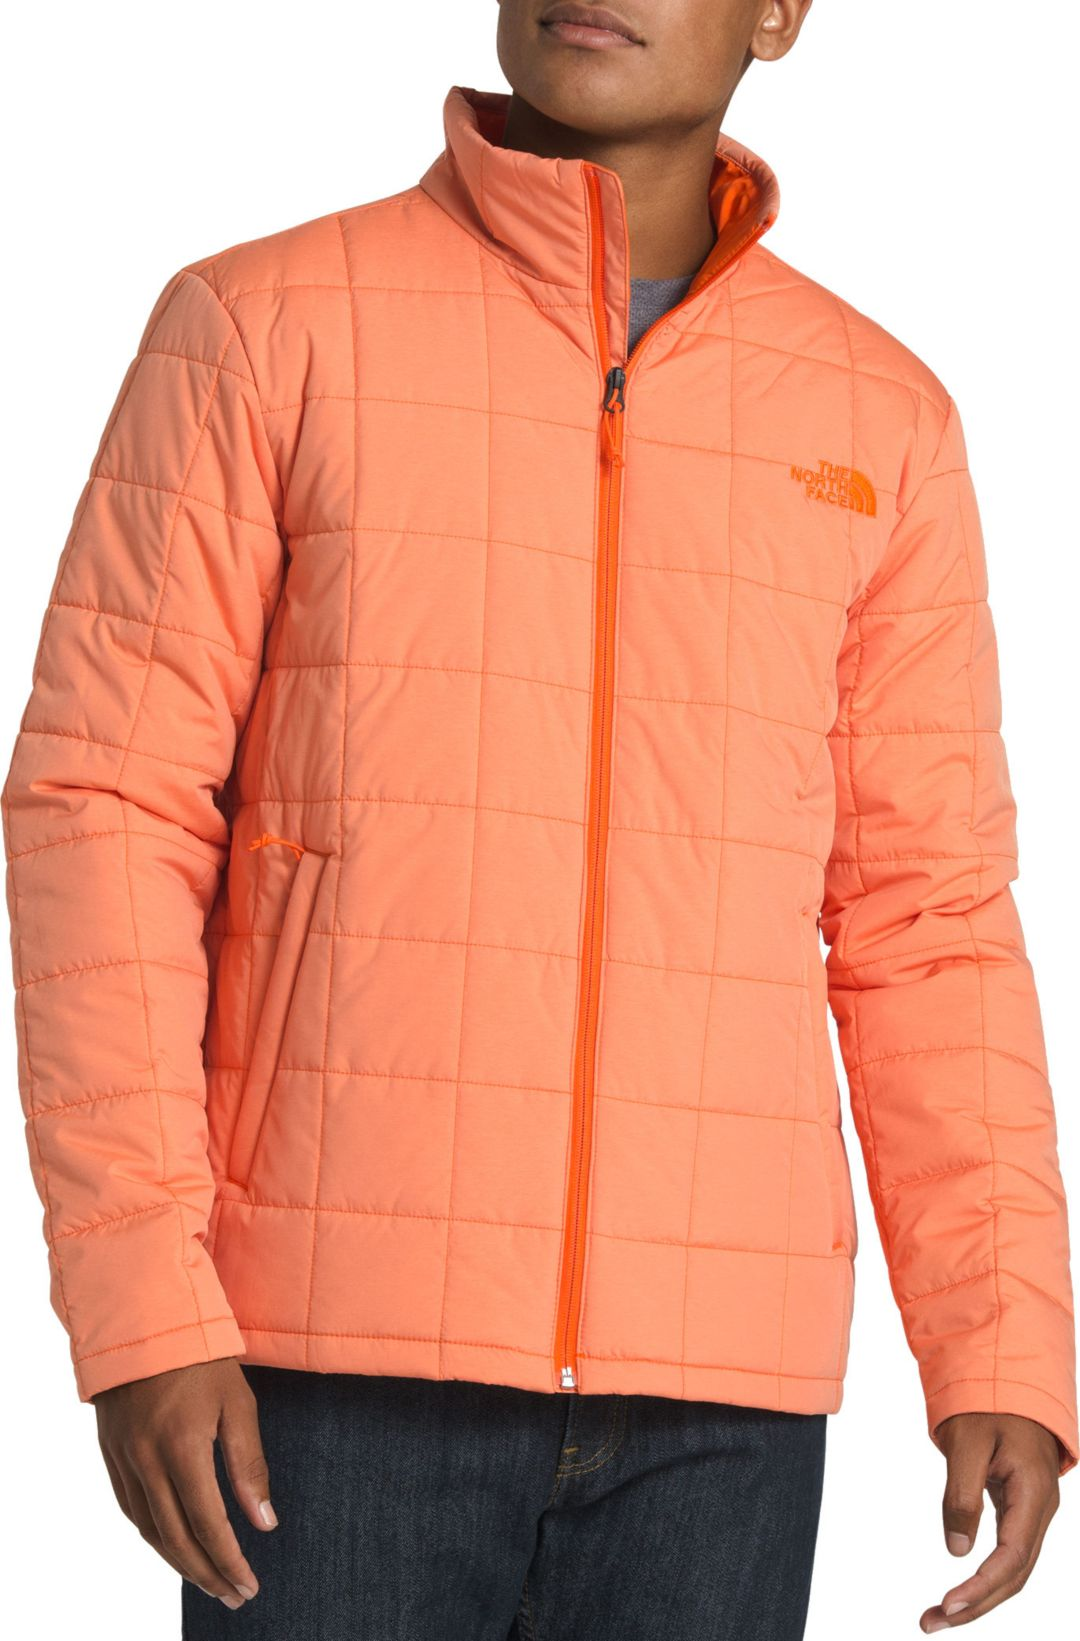 43e190806 The North Face Men's Harway Insulated Jacket